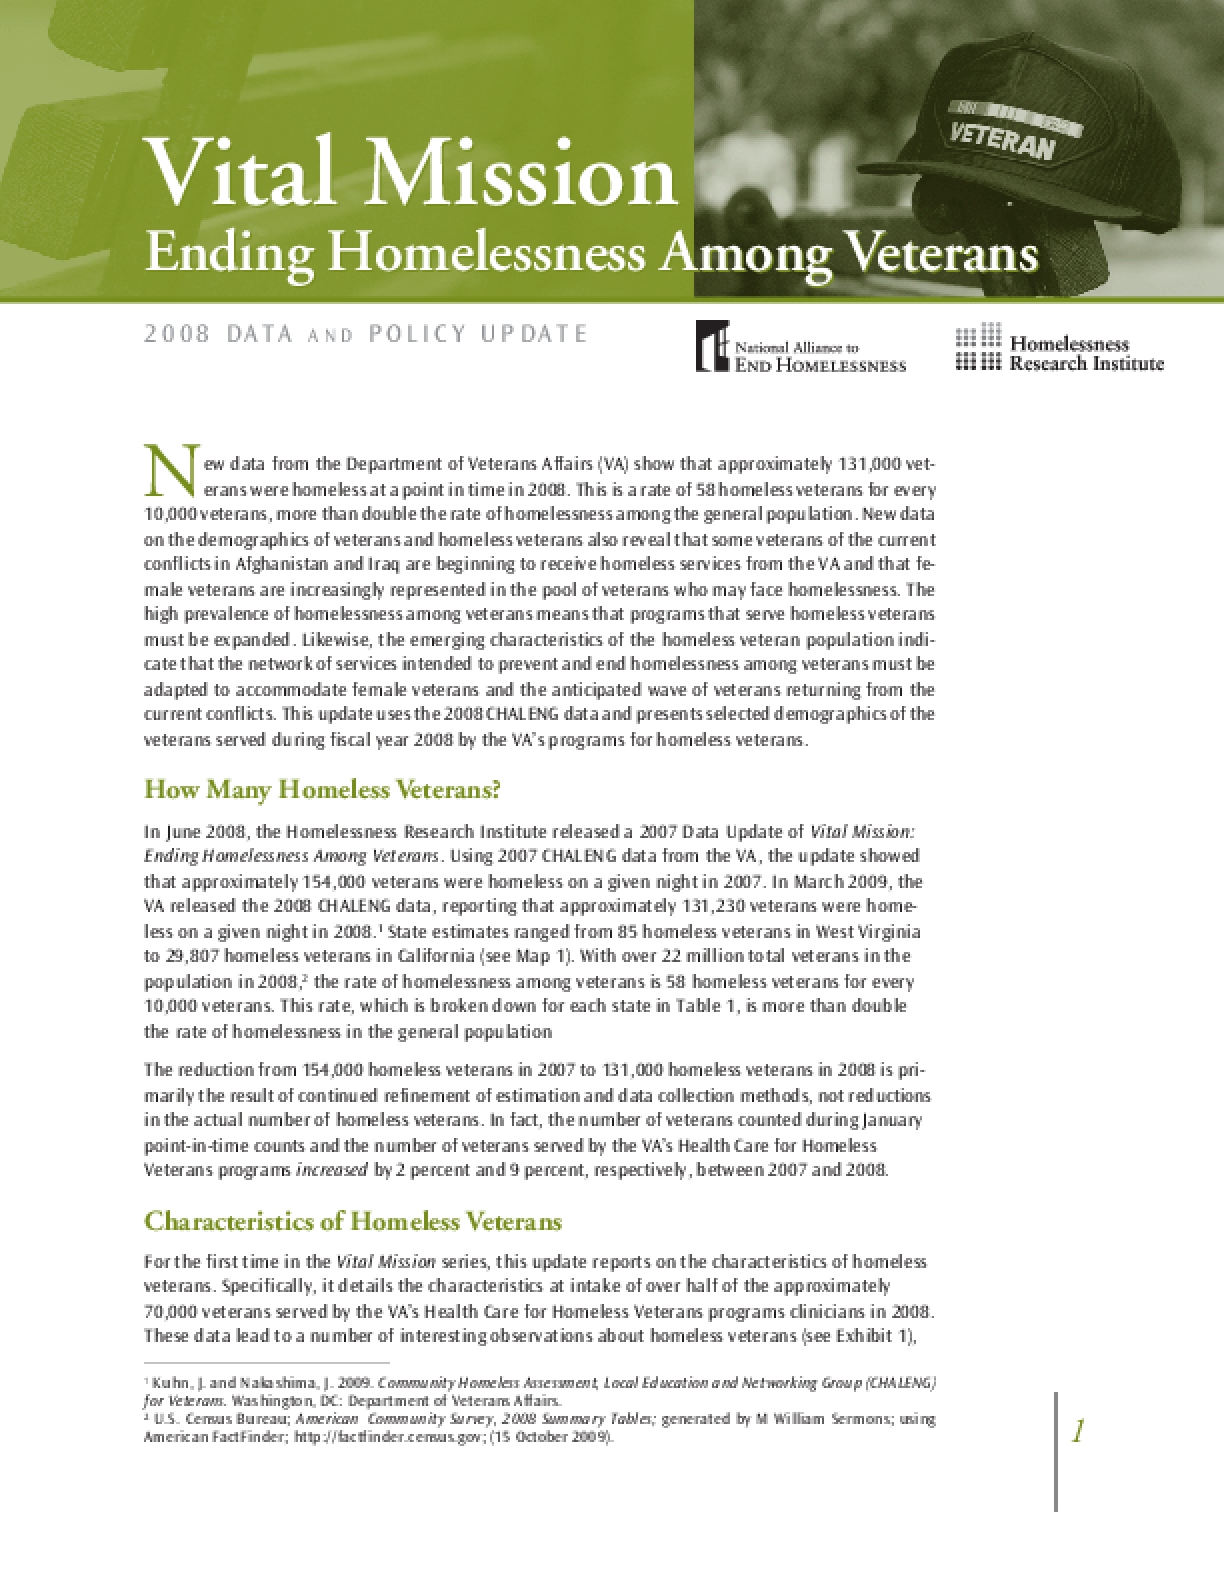 Vital Mission: Ending Homelessness Among Veterans Data and Policy Update